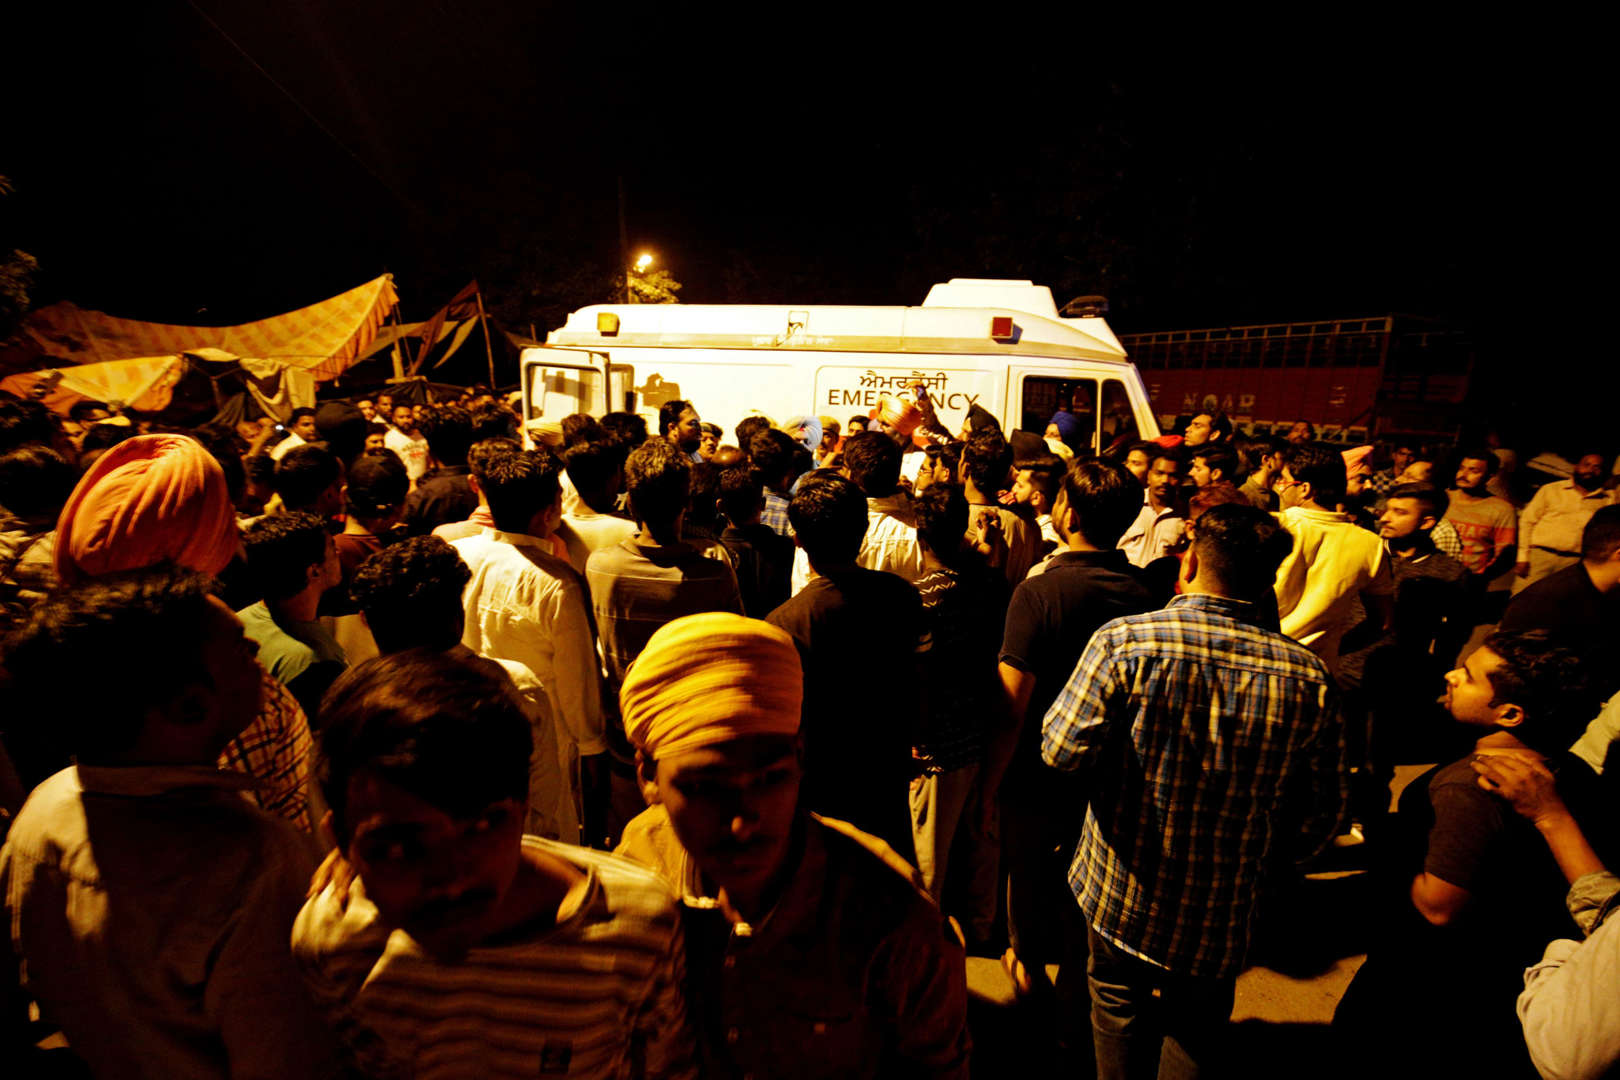 In photos: Amritsar train accident